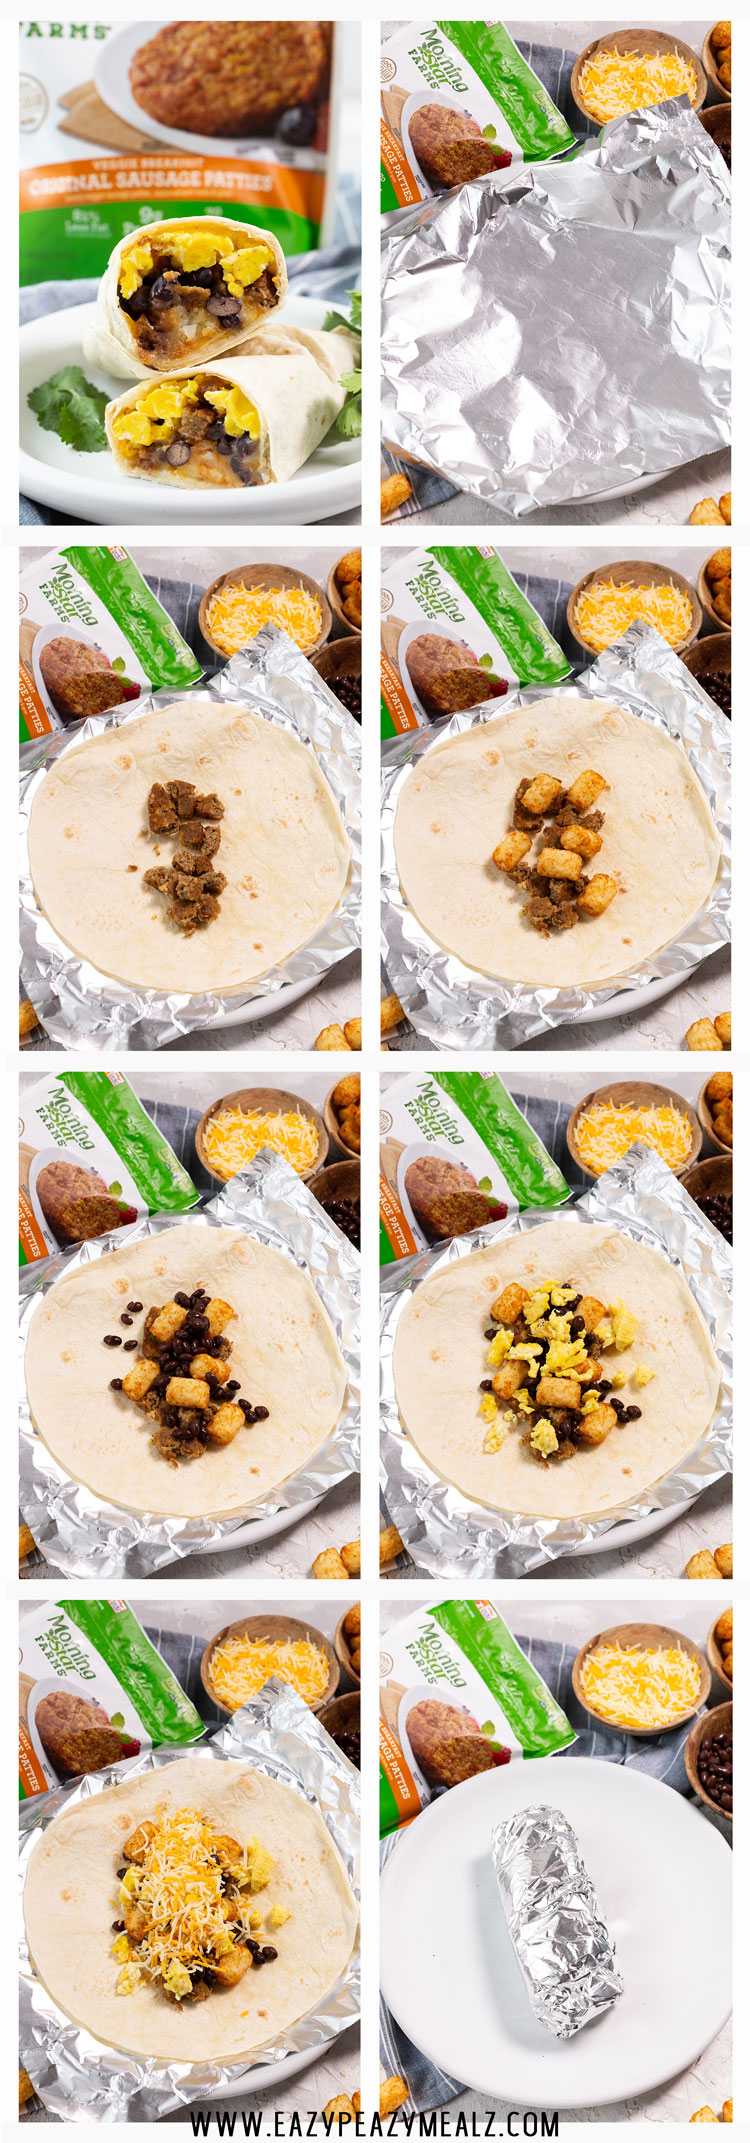 Classic breakfast burrito step by step